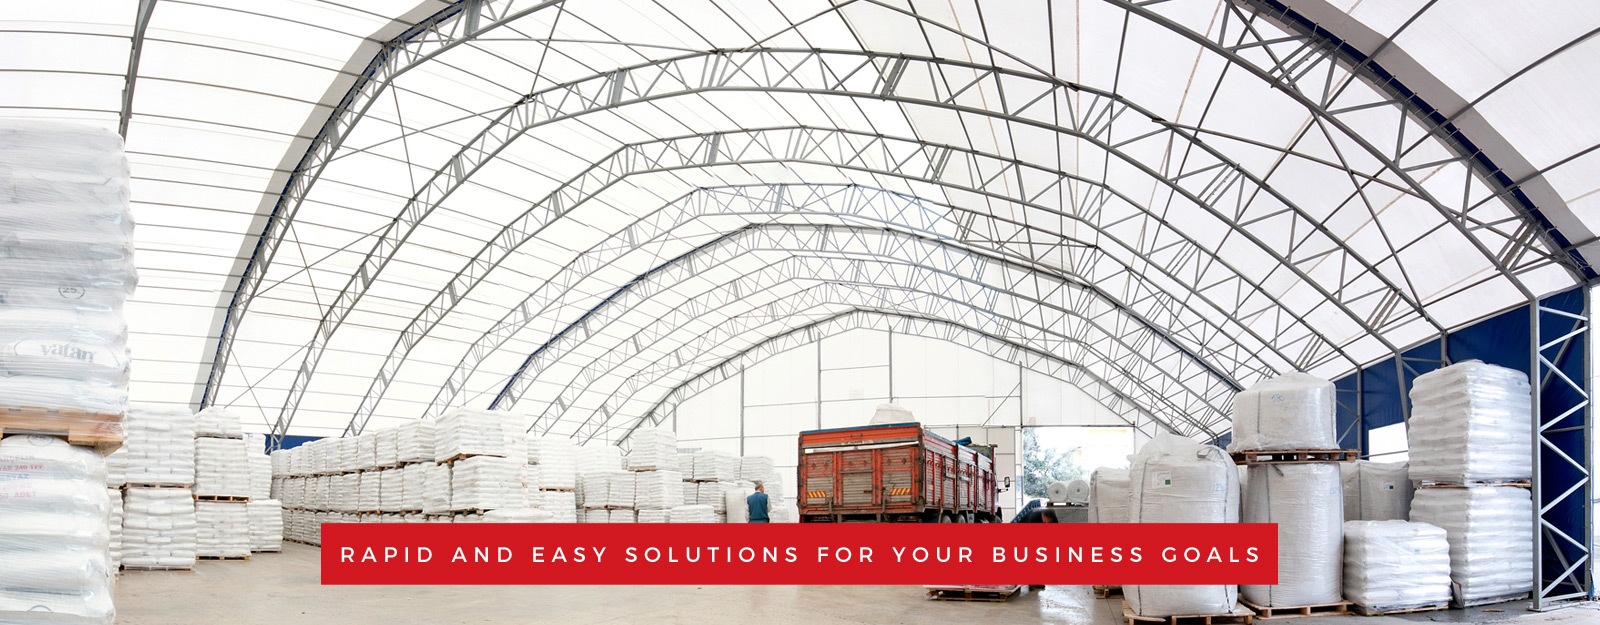 Basboga tent and tarpaulin, rapid and easy solutions for your business goals